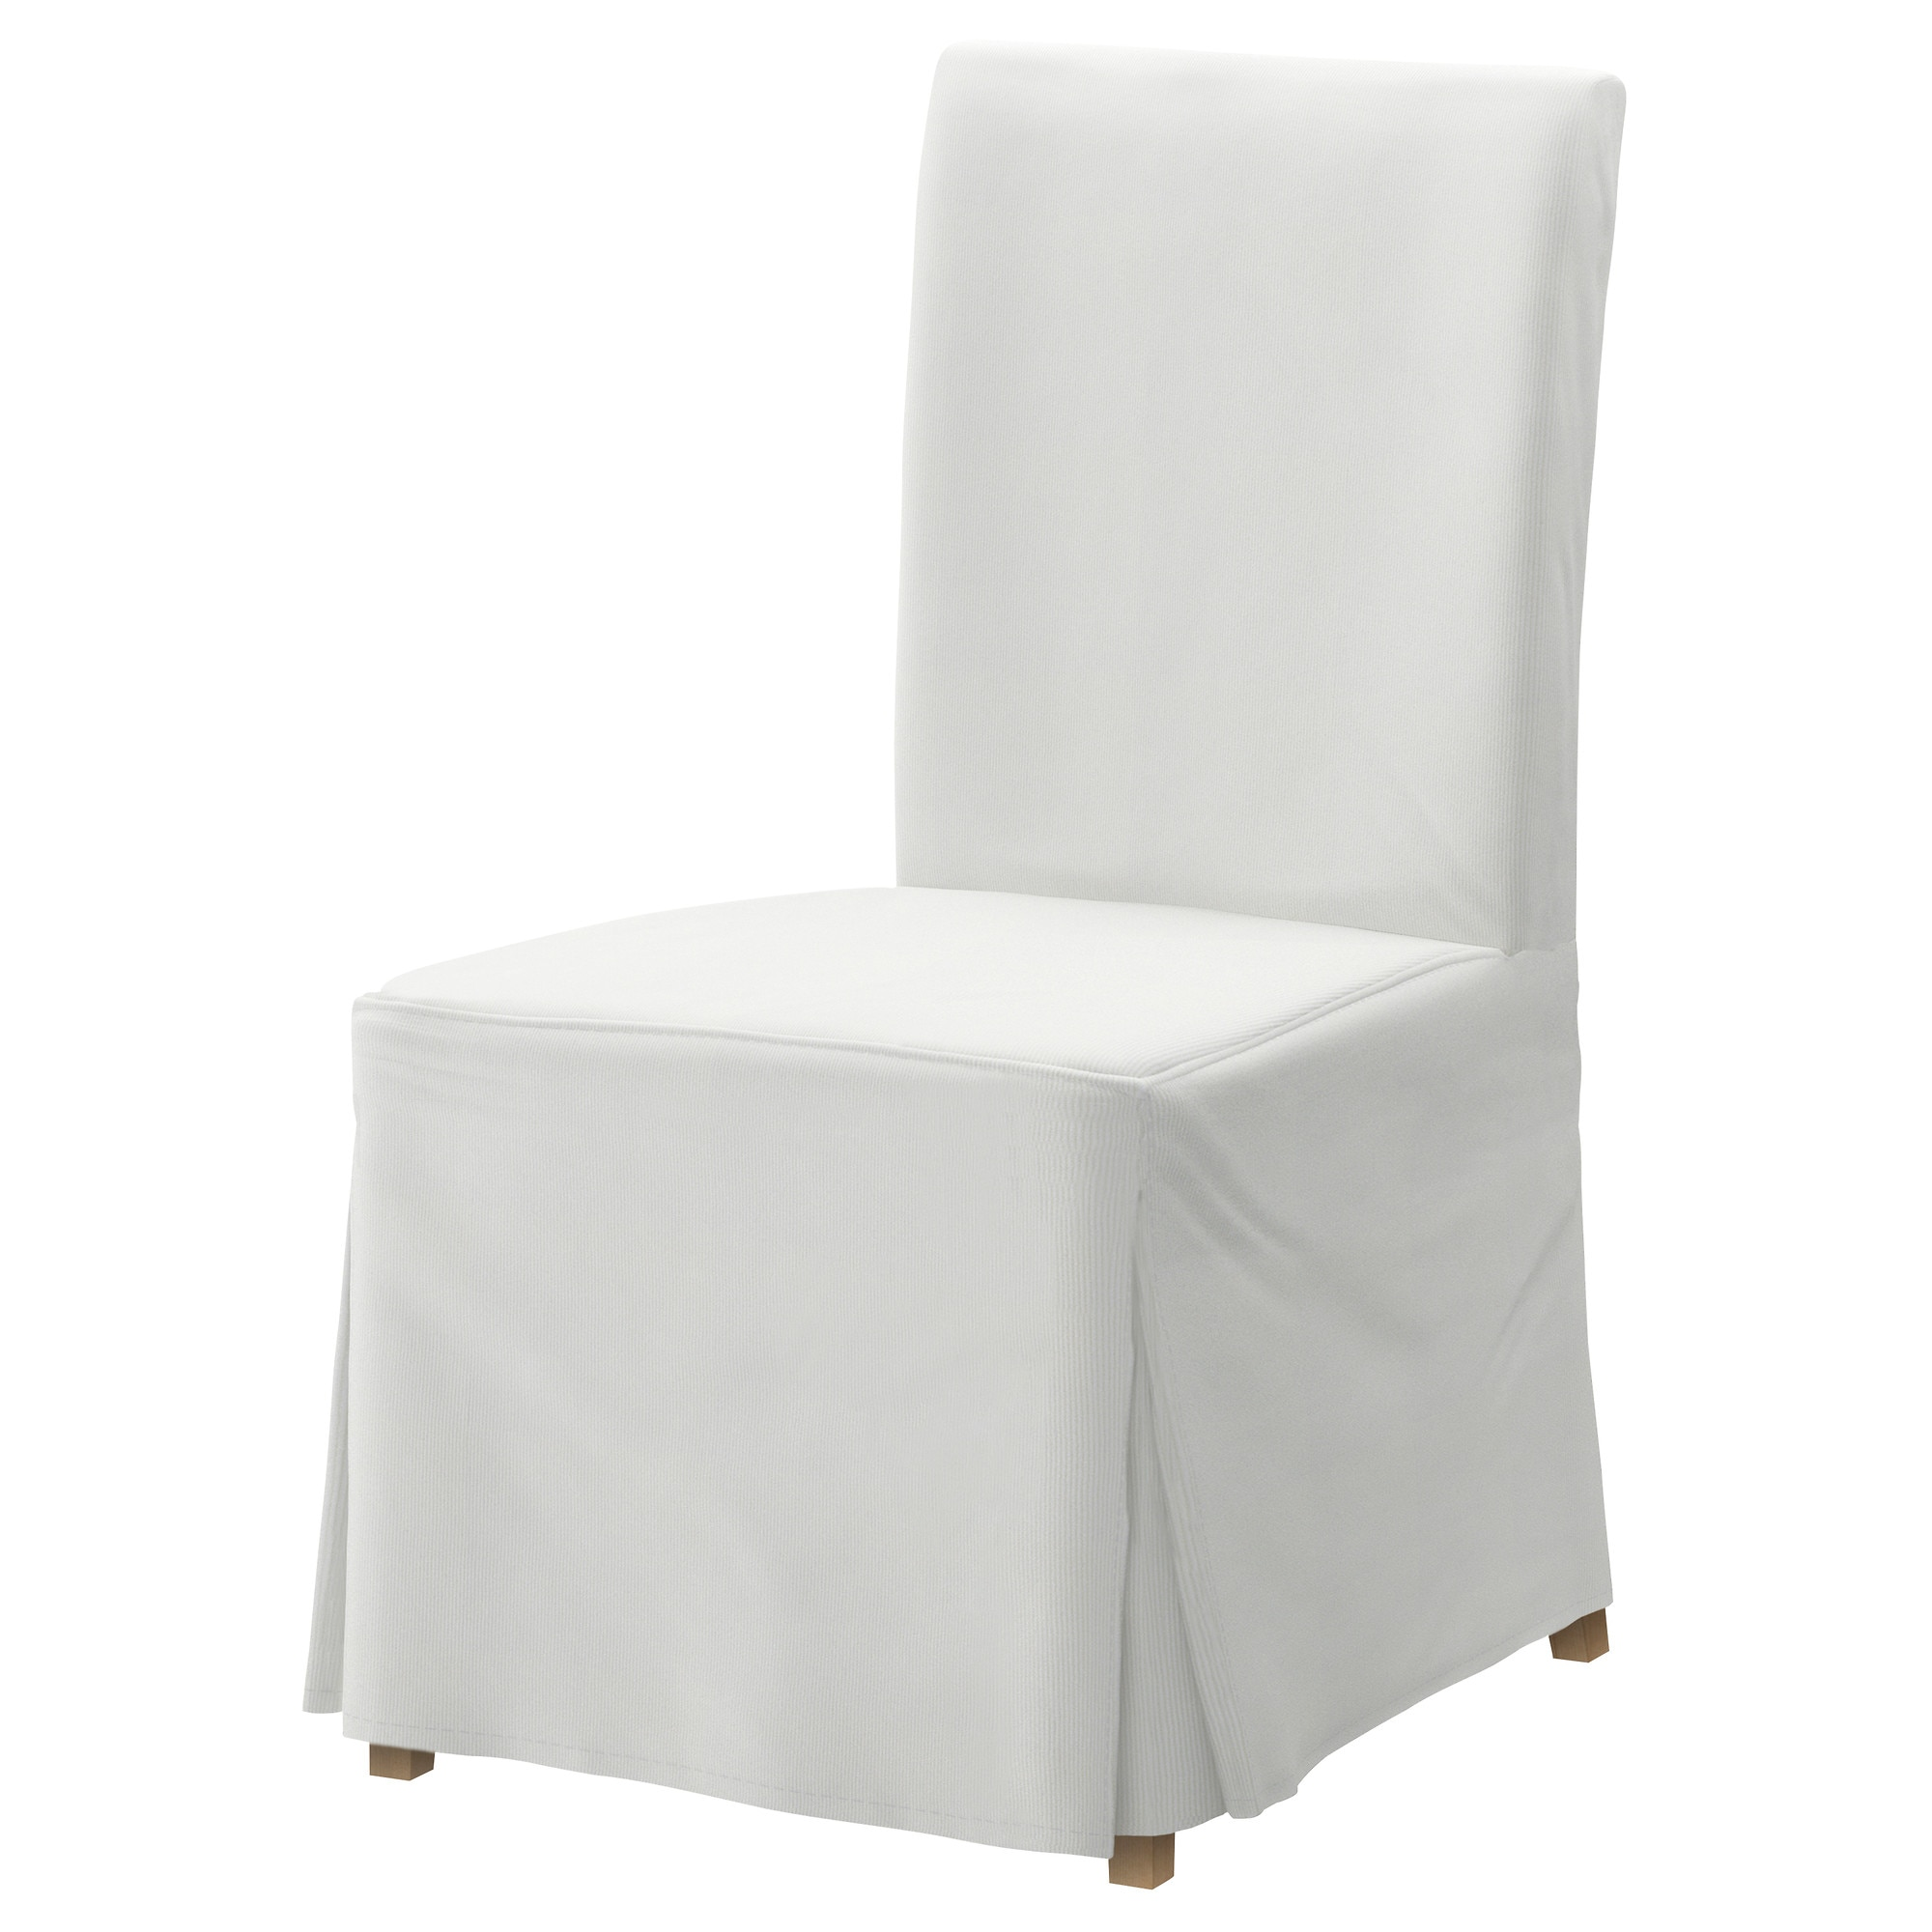 Awesome HENRIKSDAL Chair With Long Cover   Blekinge White, Birch   IKEA